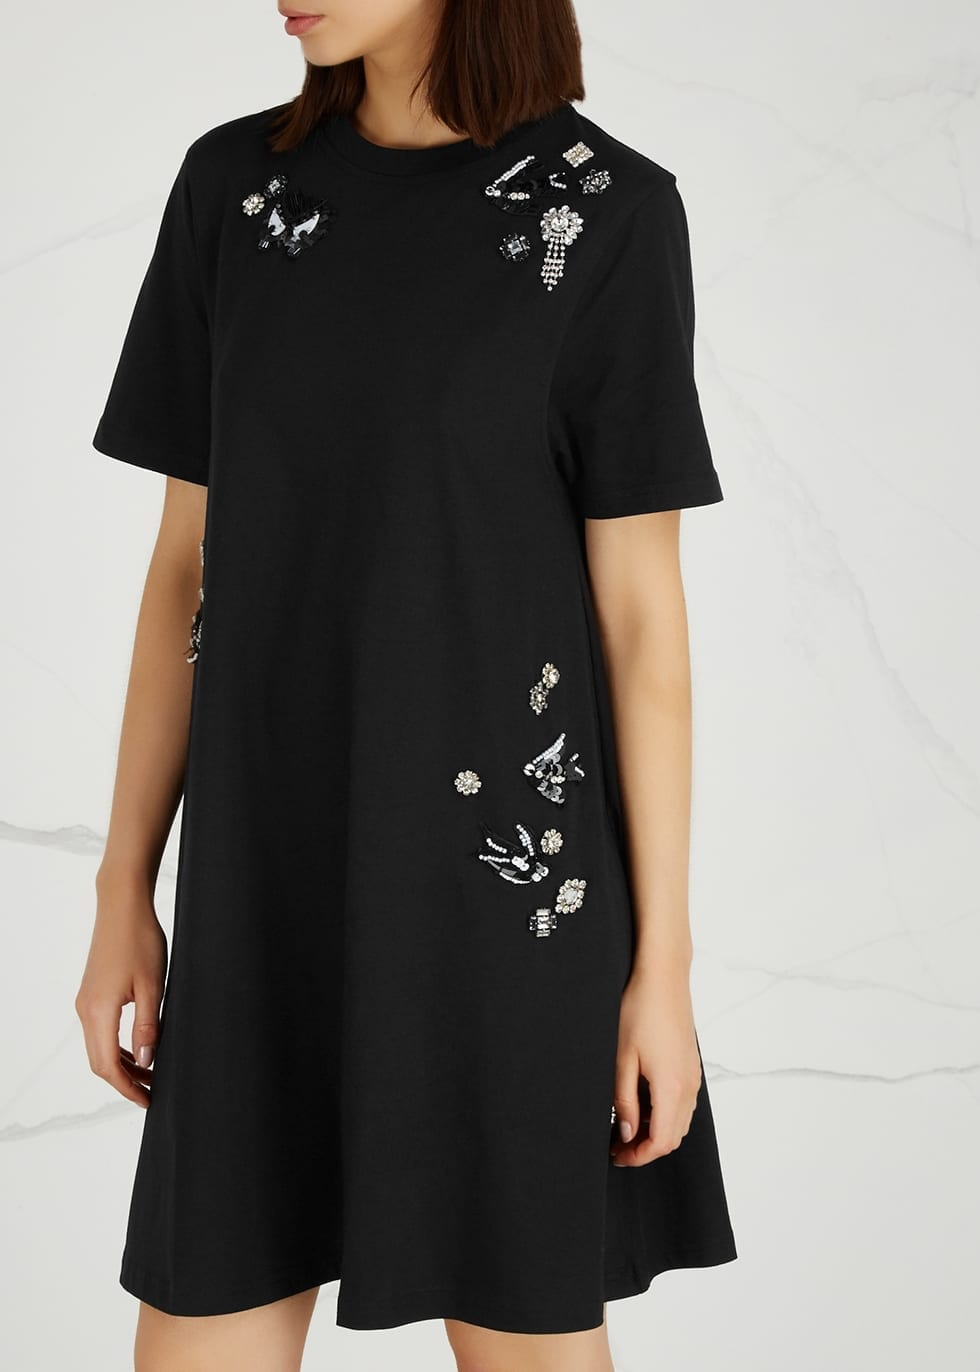 9723a5131f35a MCQ ALEXANDER MCQUEEN Embellished Cotton T-shirt Black Dress - We ...